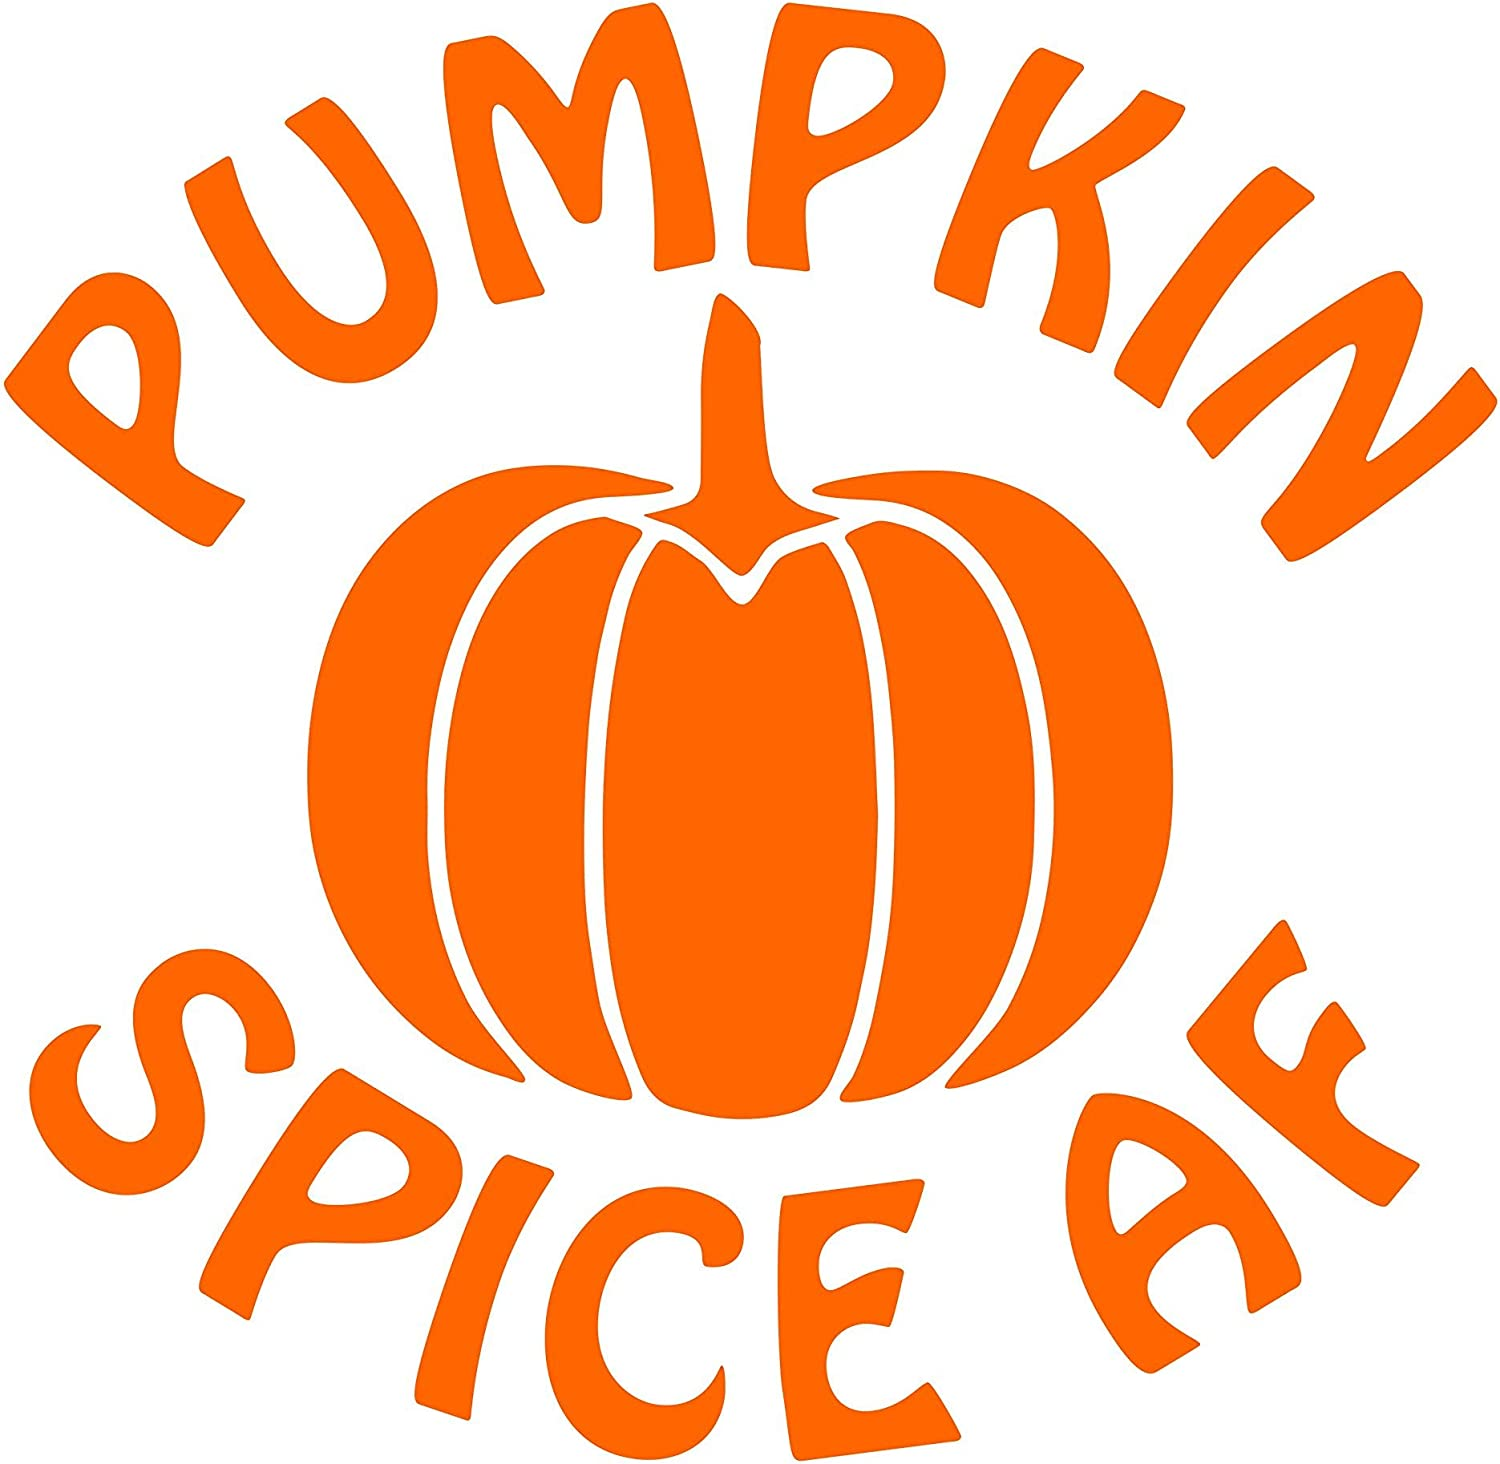 "Diamond Graphics Pumpkin Spice AF (3-3/4"" x 3-3/4"") Orange Die Cut Decal Bumper Sticker for Windows, Cars, Trucks, Laptops, Etc."